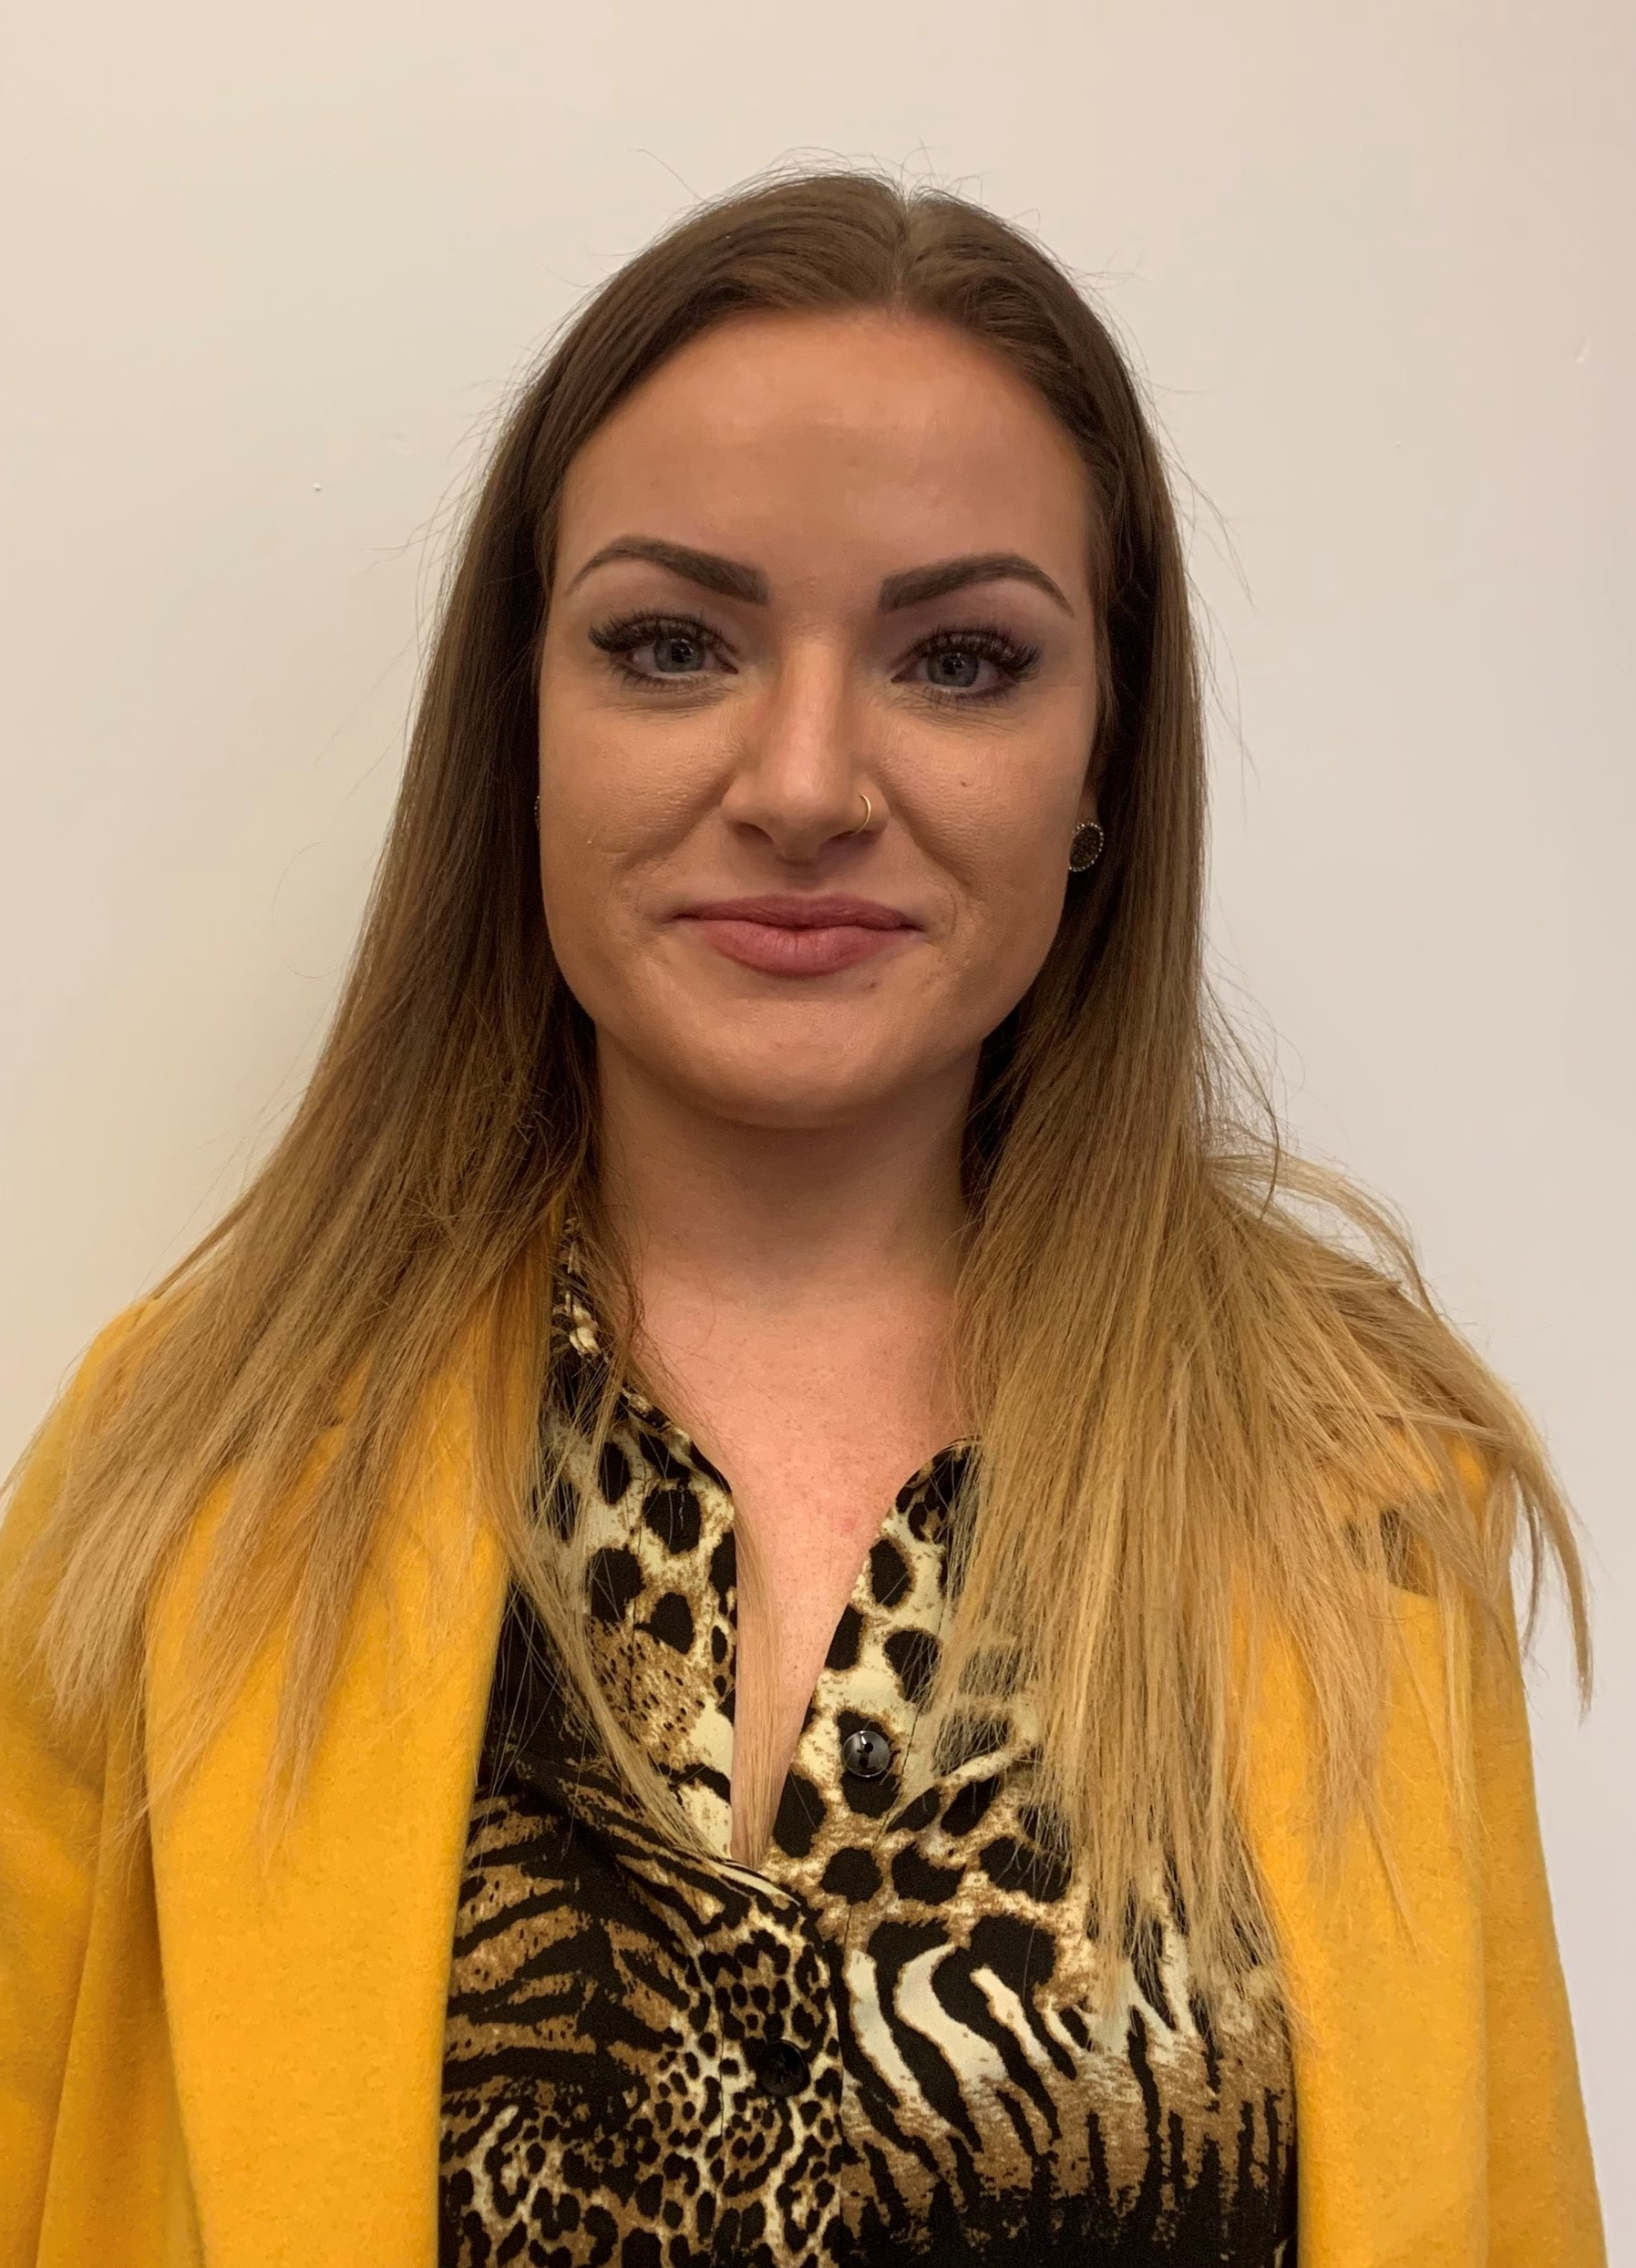 - We are pleased to appoint Cheena Boak as our Community Partnerships Manager in Luton & Dunstable. Cheena is a fantastic addition to the team, and is the person you should speak to if you'd like to discuss a partnership, or if you want to do something crazy to raise money!